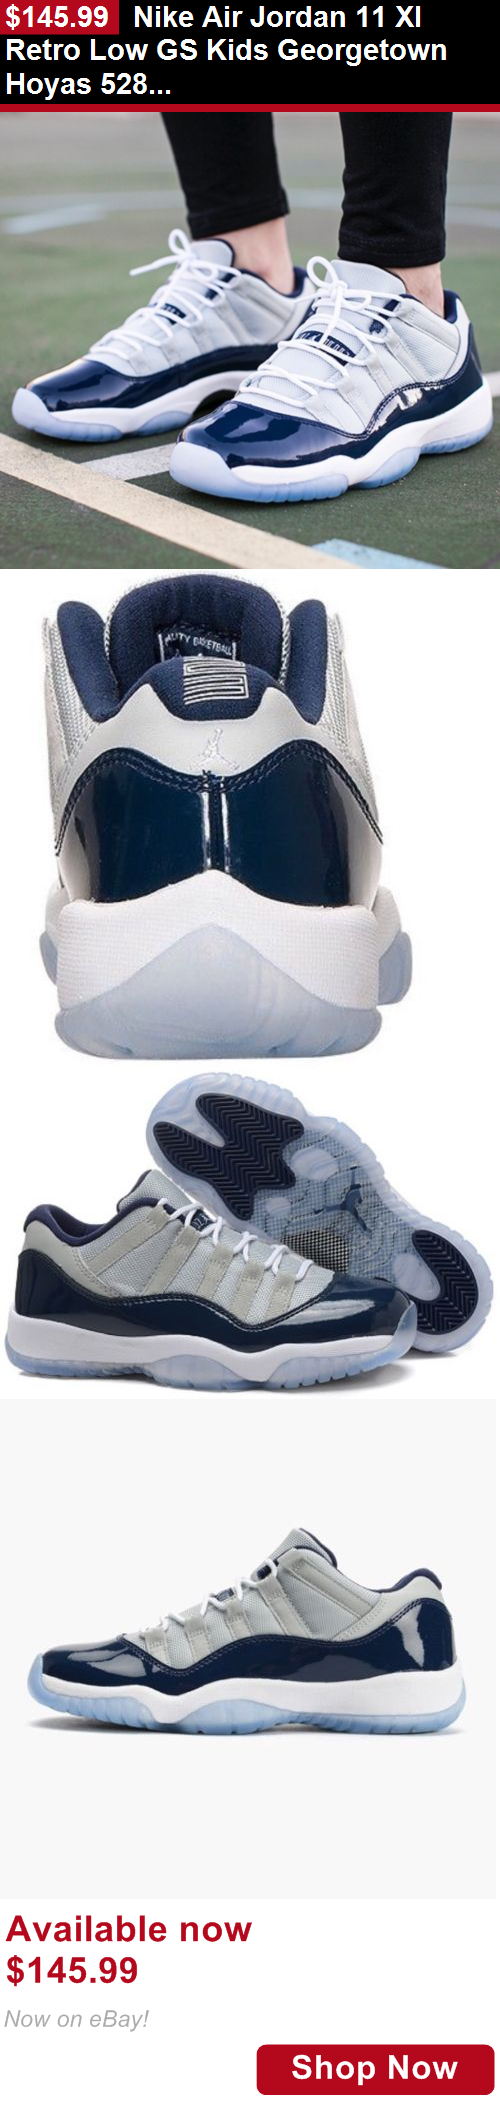 f02476c94b376c Children boys clothing shoes and accessories  Nike Air Jordan 11 Xi Retro  Low Gs Kids Georgetown Hoyas 528896-007 Sz 7Y BUY IT NOW ONLY   145.99